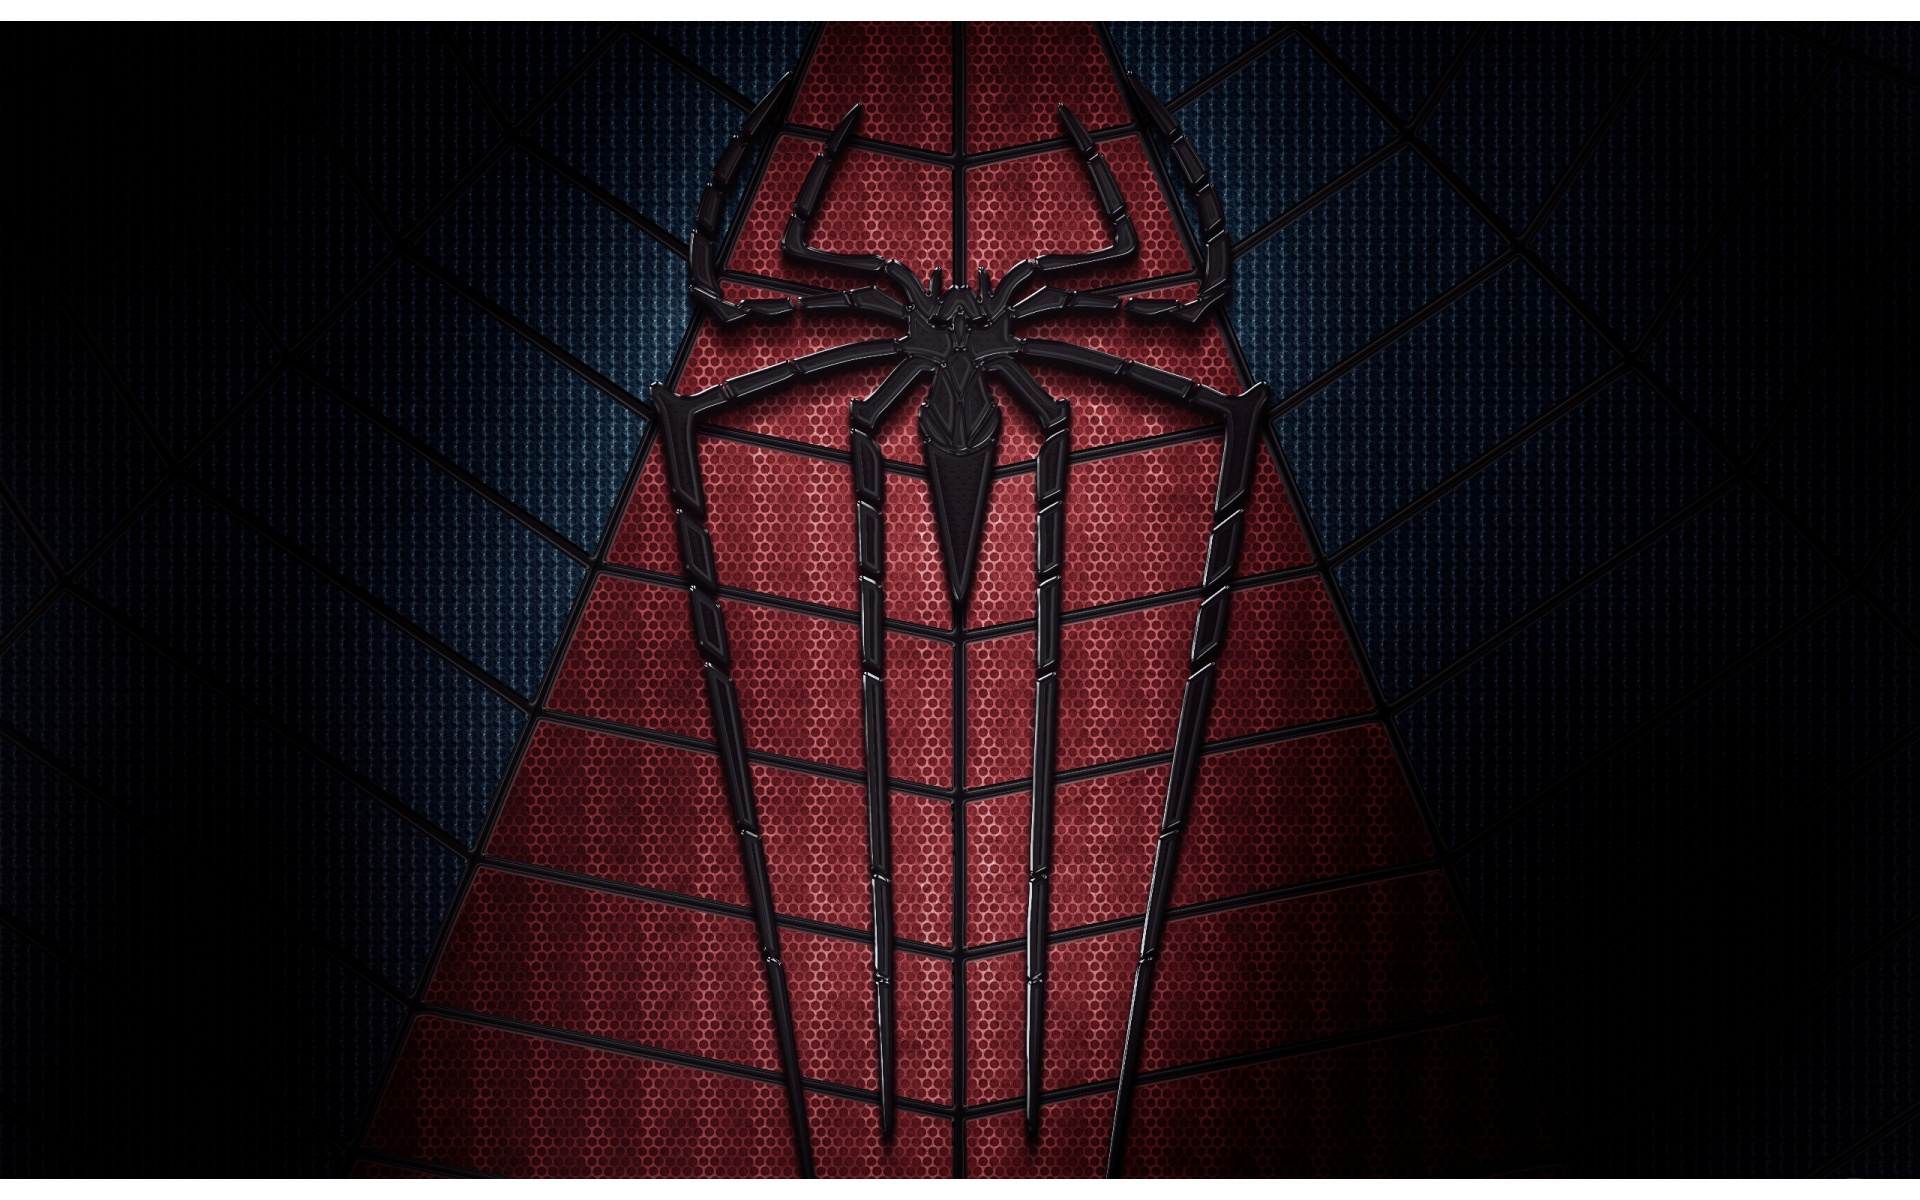 The amazing spider man logo - photo#53